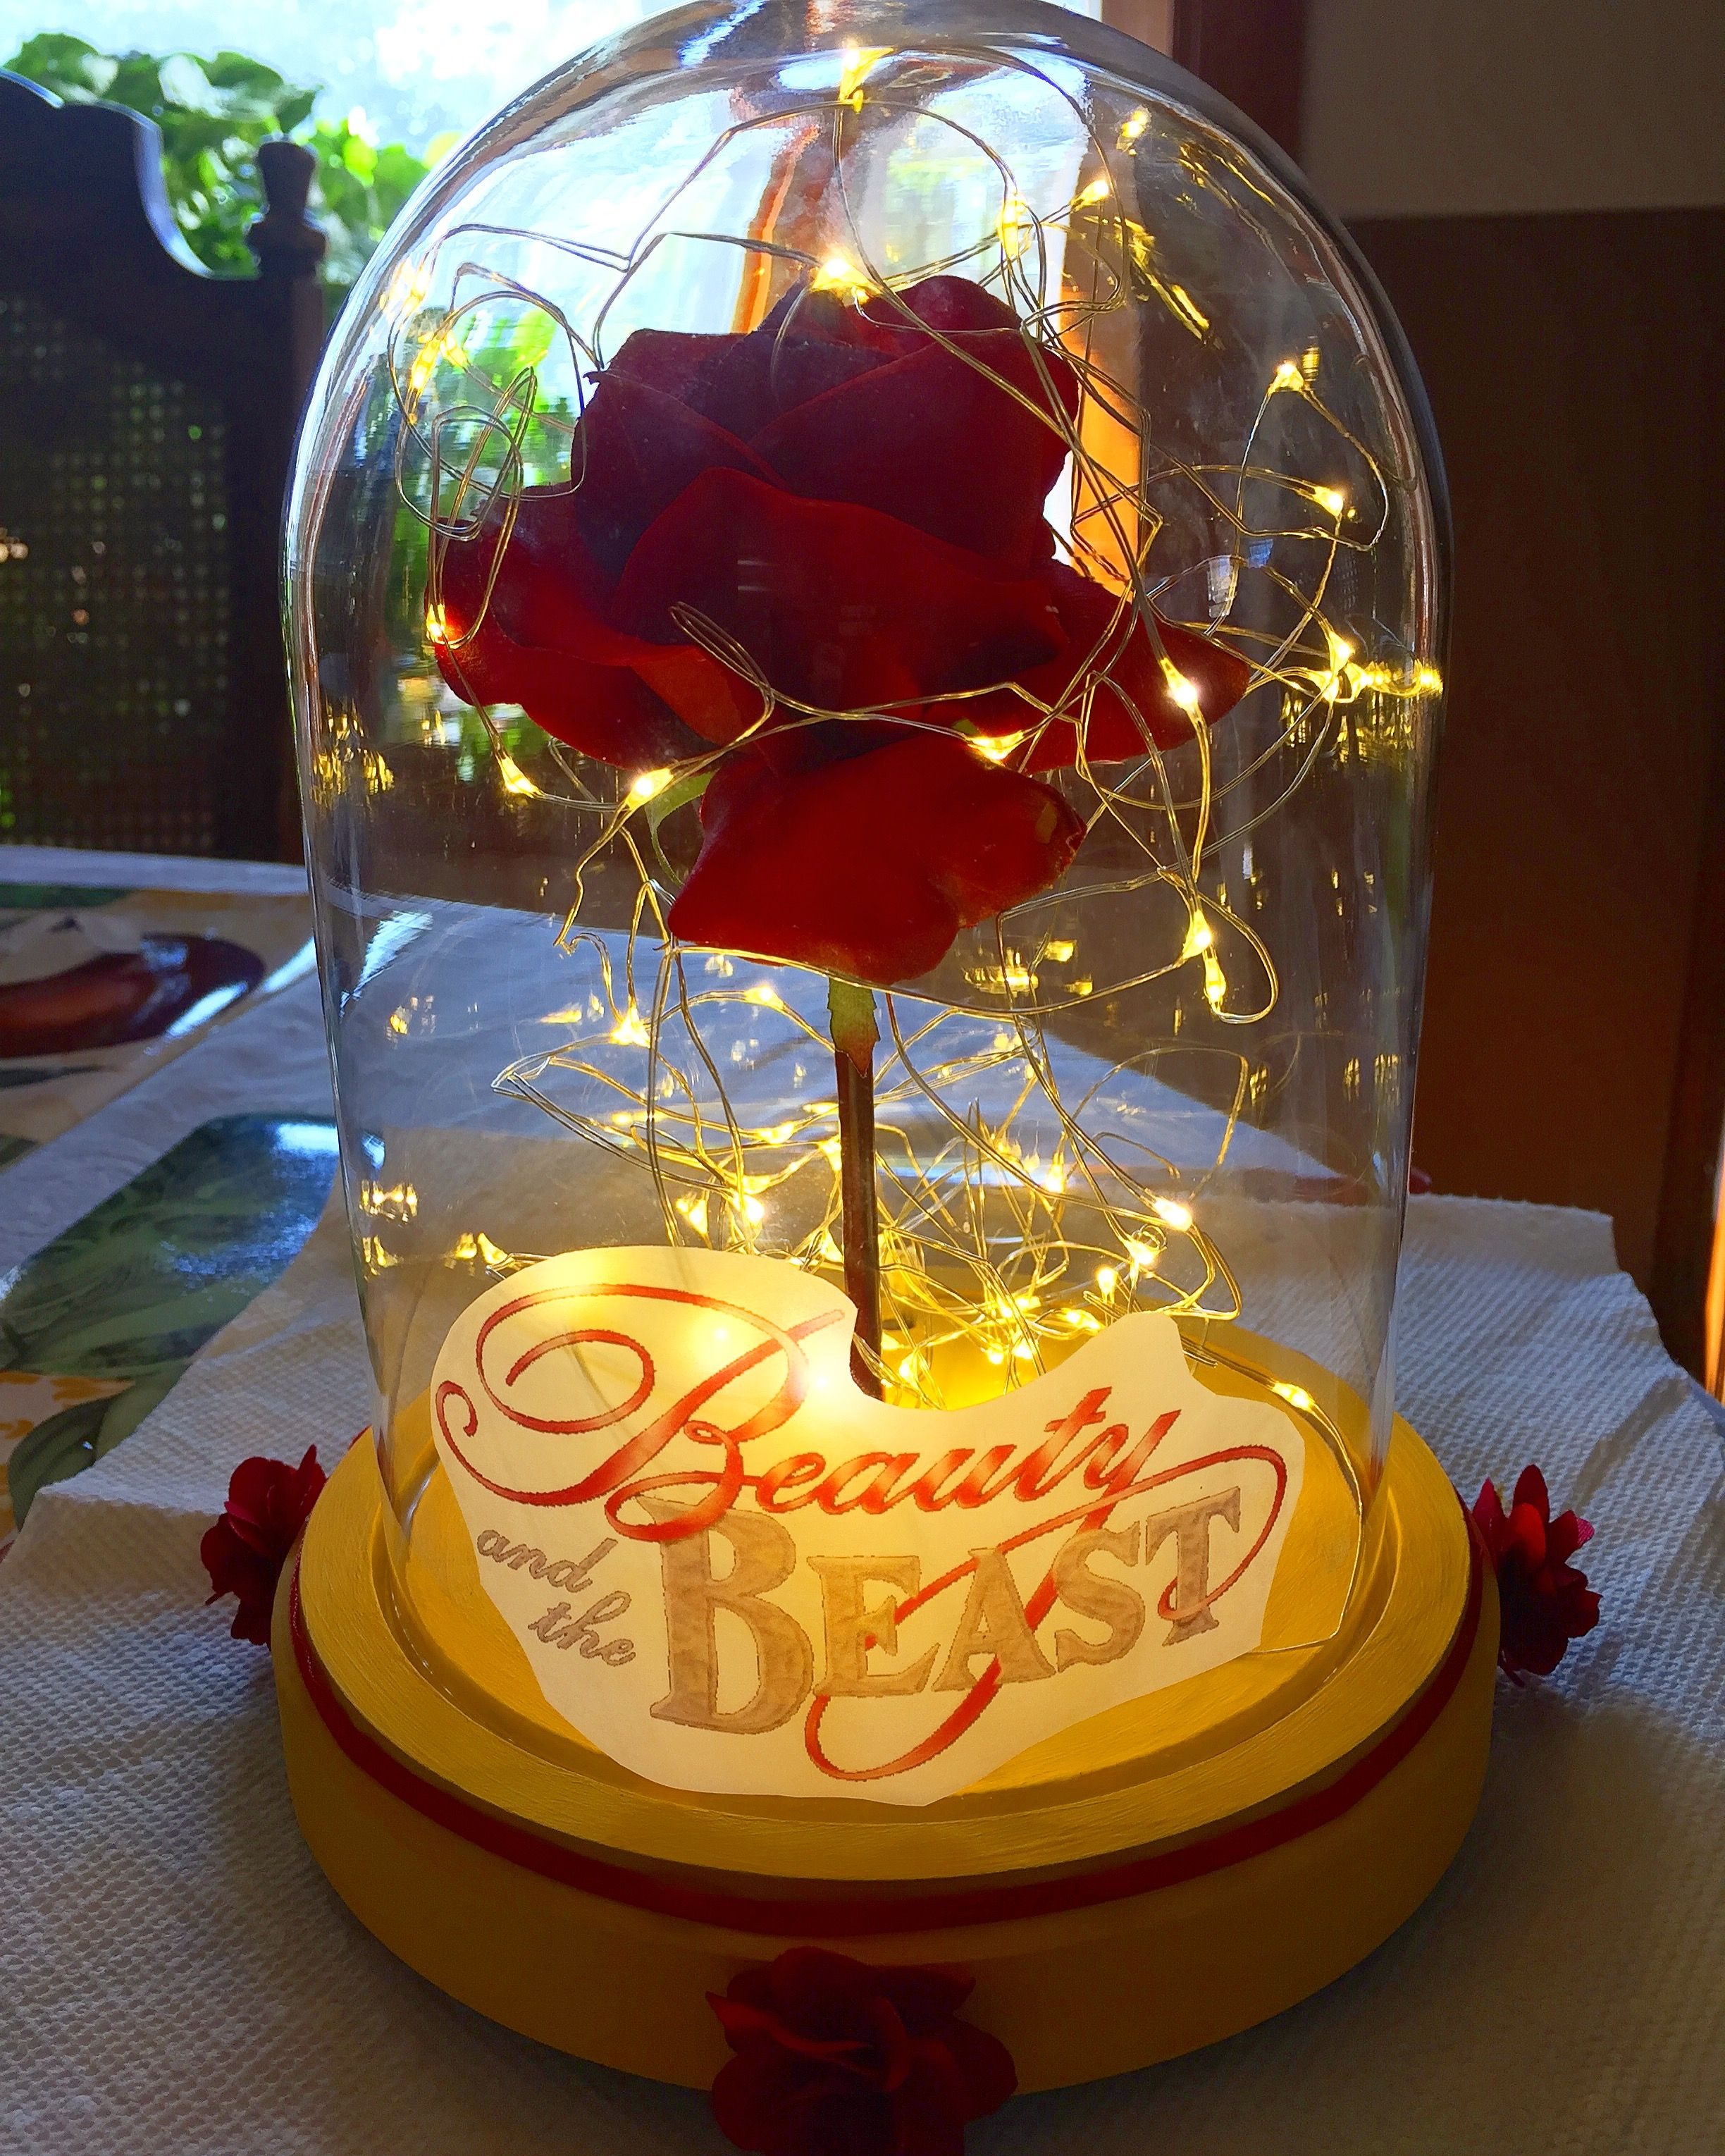 Beauty and the beast glass rose center piece kid